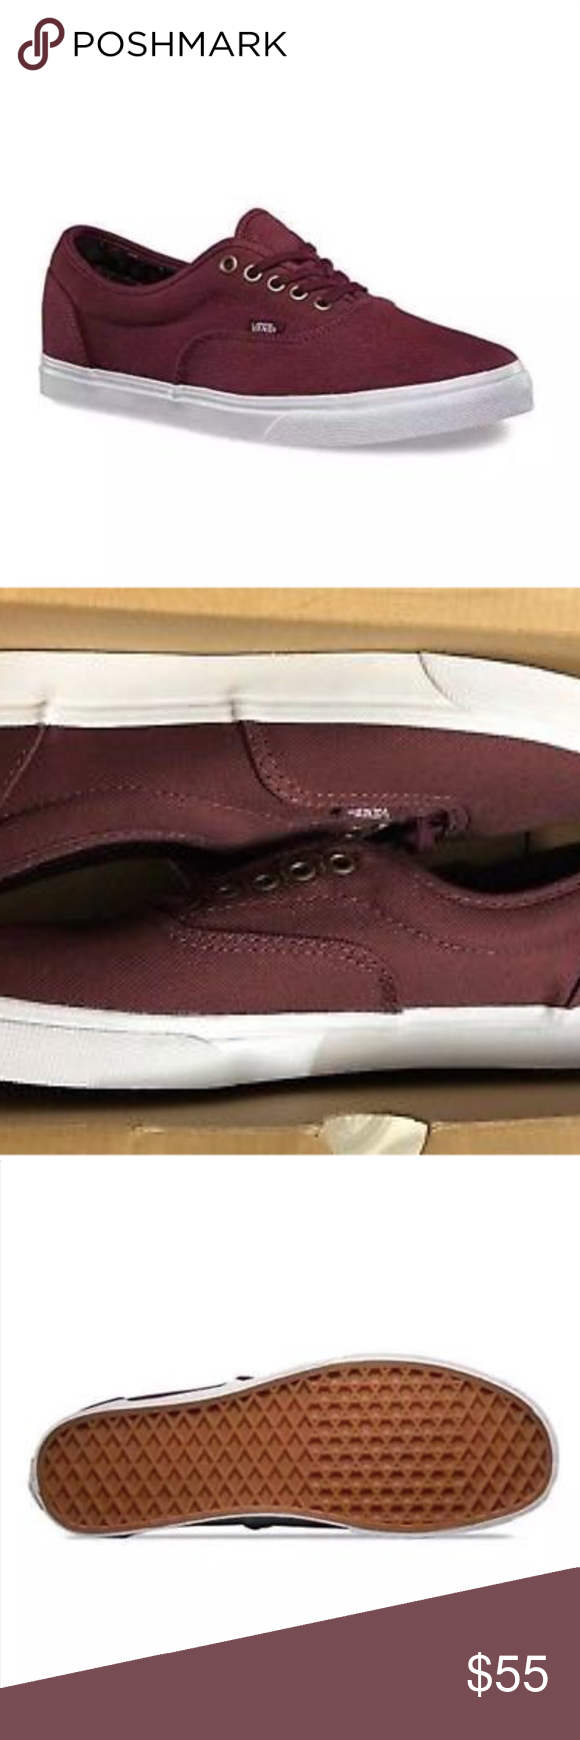 8268bce1a8 Vans LPE Geo Suiting Port Royale Twill Skate Vans LPE Geo Suiting Port  Royale Twill Classic Skate Shoes Size Men 7 Women 8.5 Brand New In Box Vans  Shoes ...